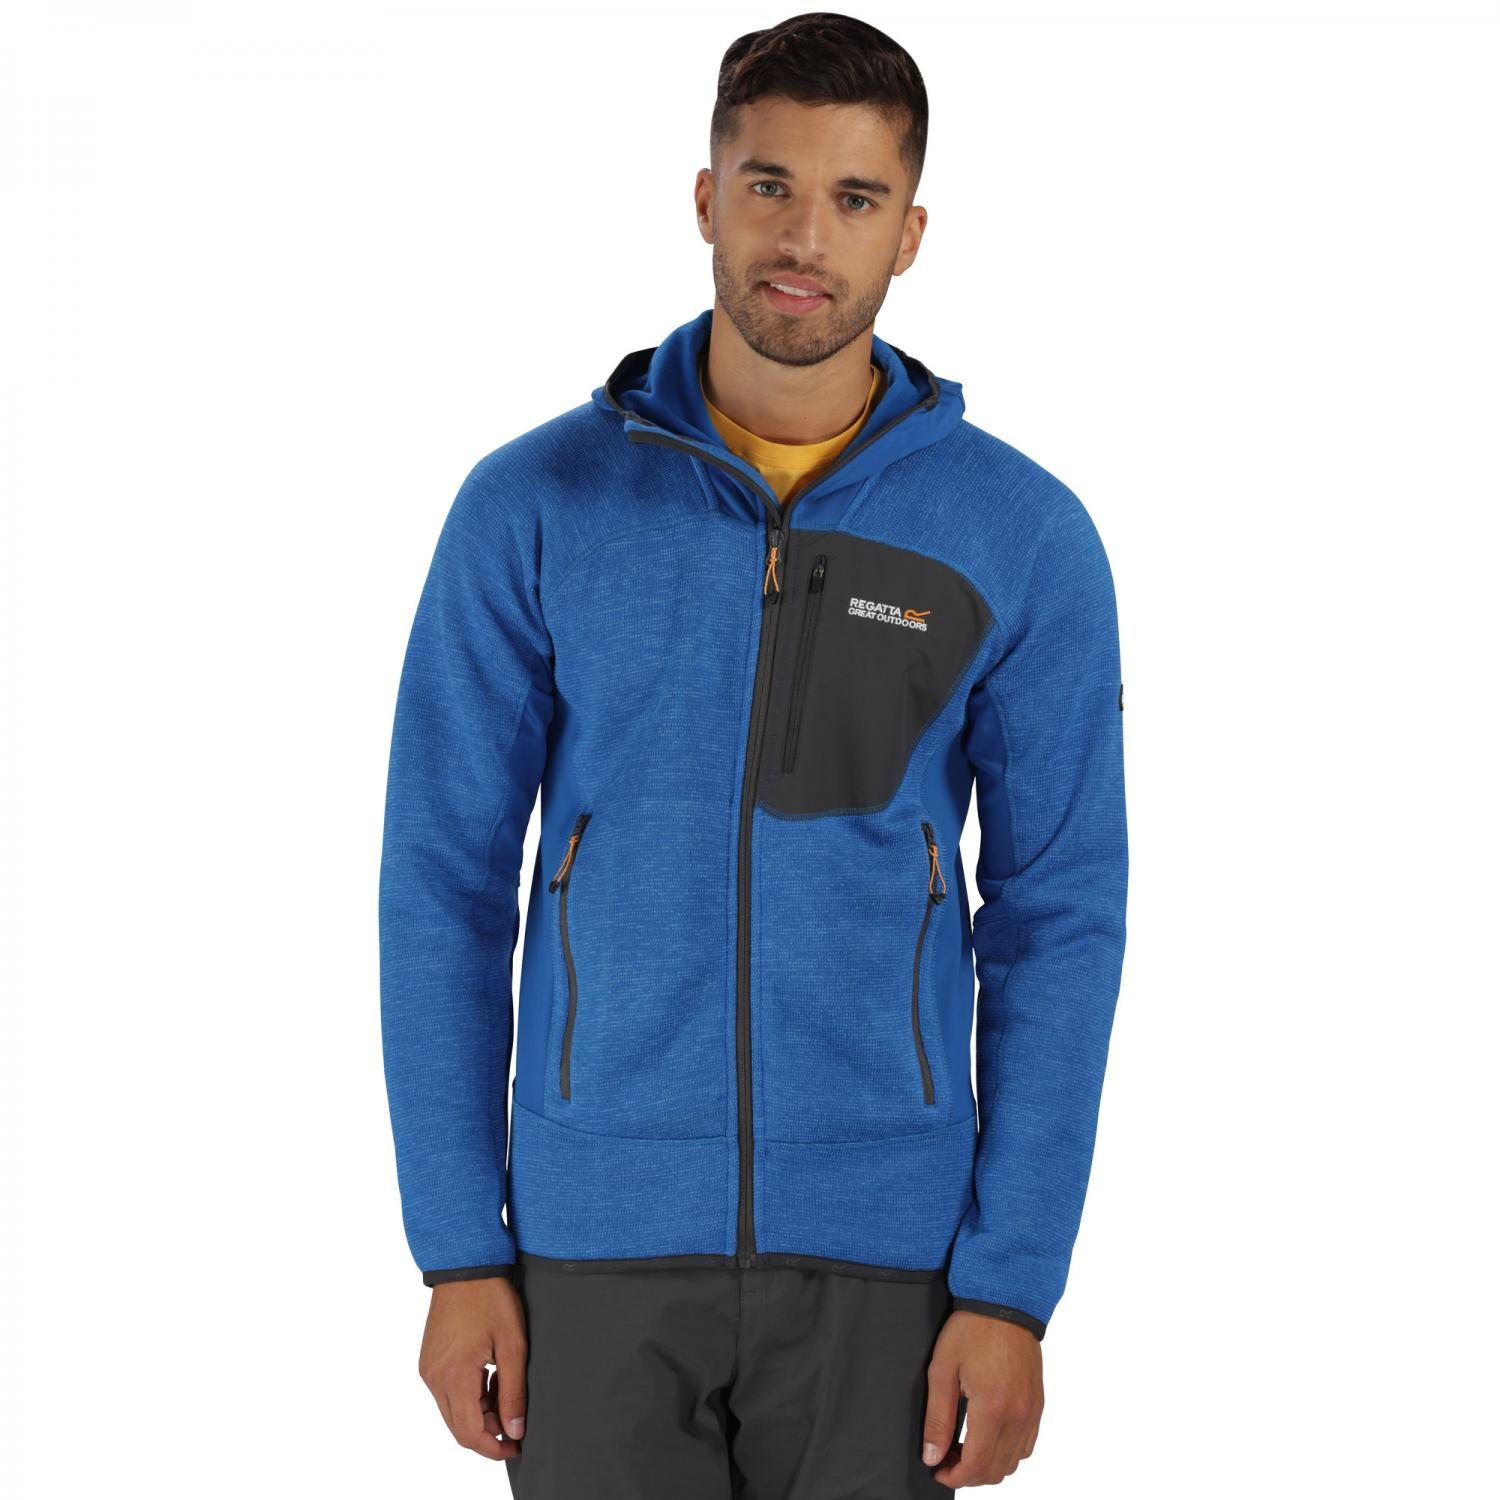 Cartersville III Hooded Fleece Oxford Blue